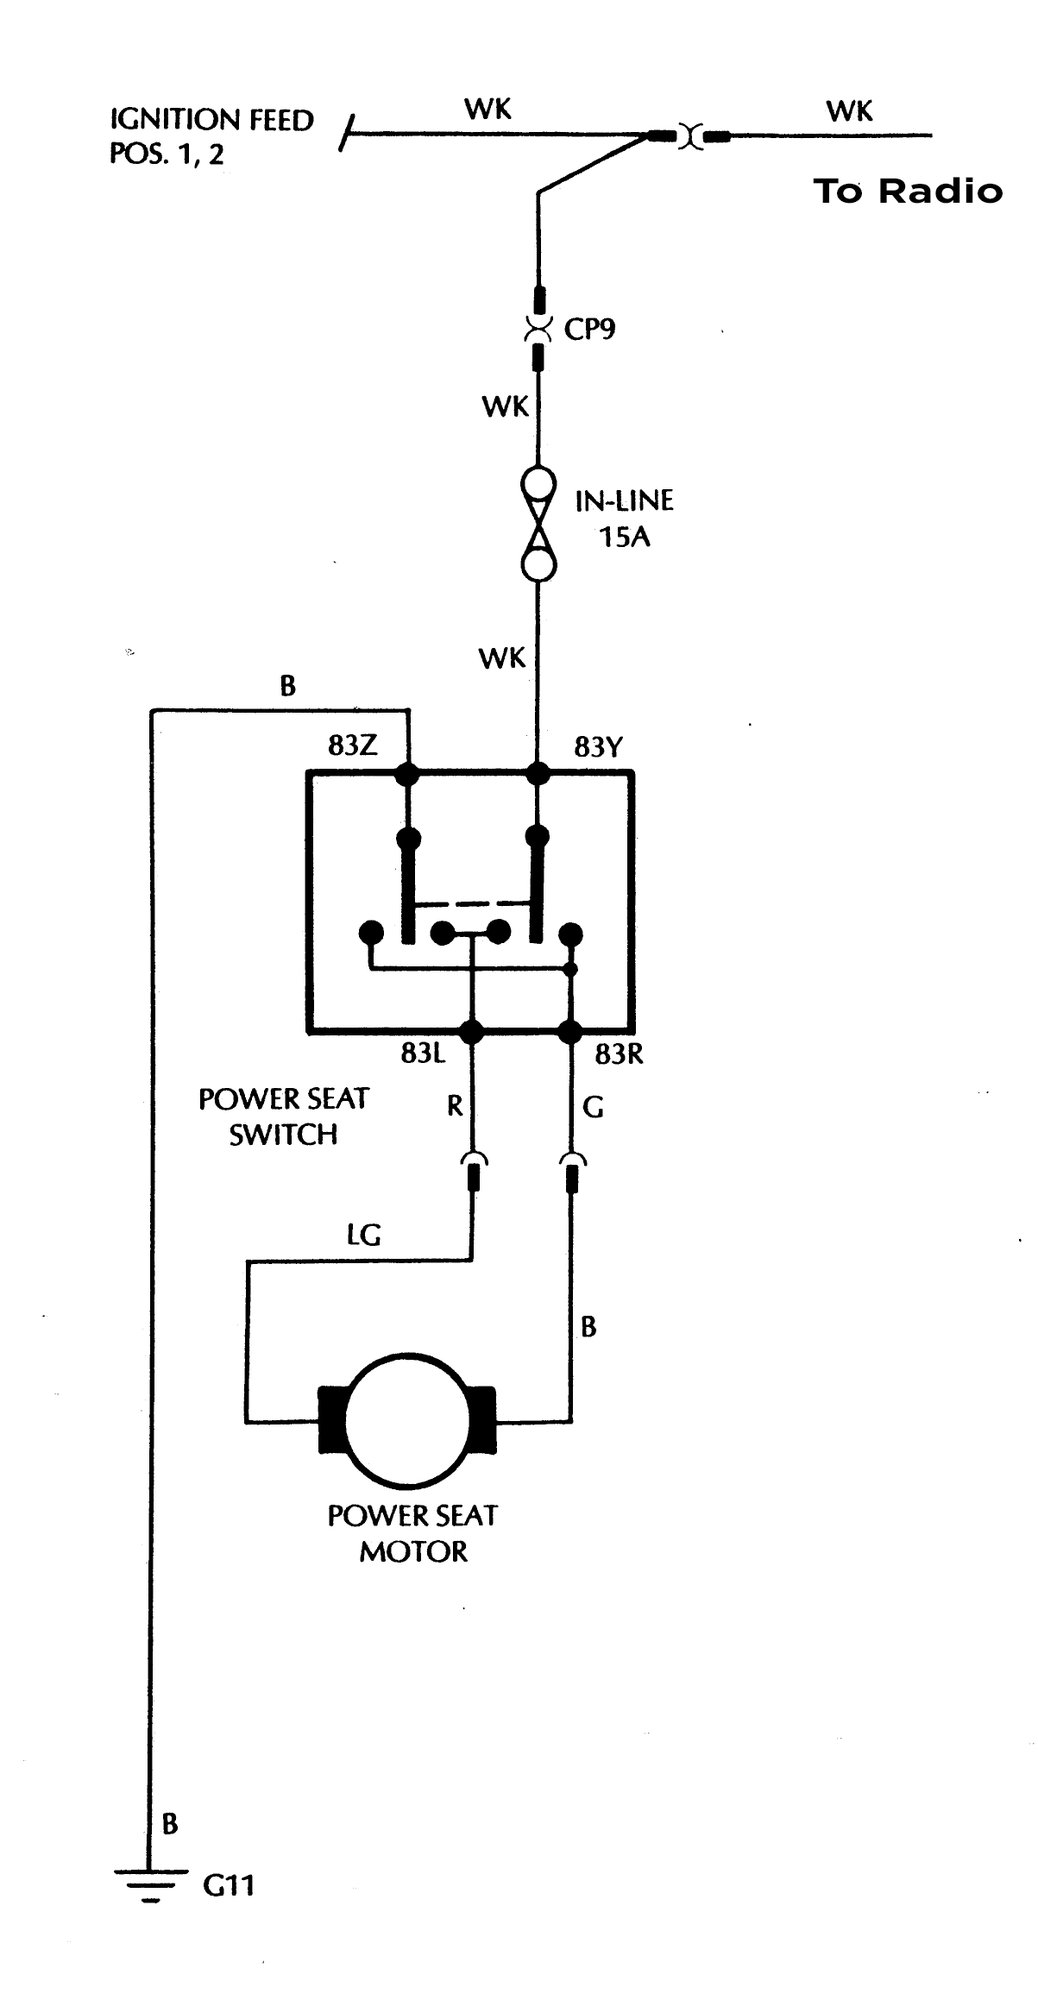 Power Seat Diagram